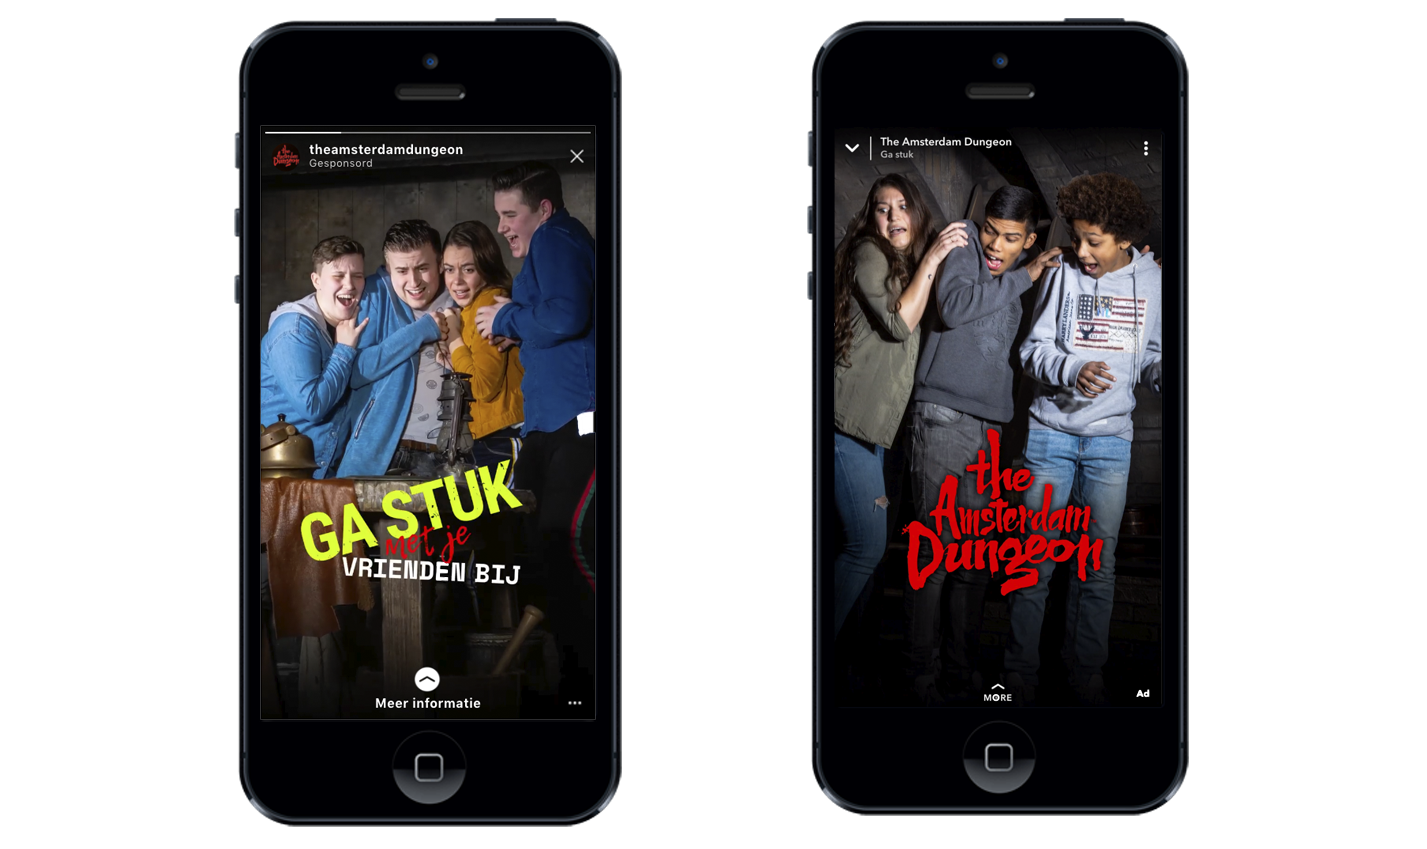 The Amsterdam Dungeon – social advertising